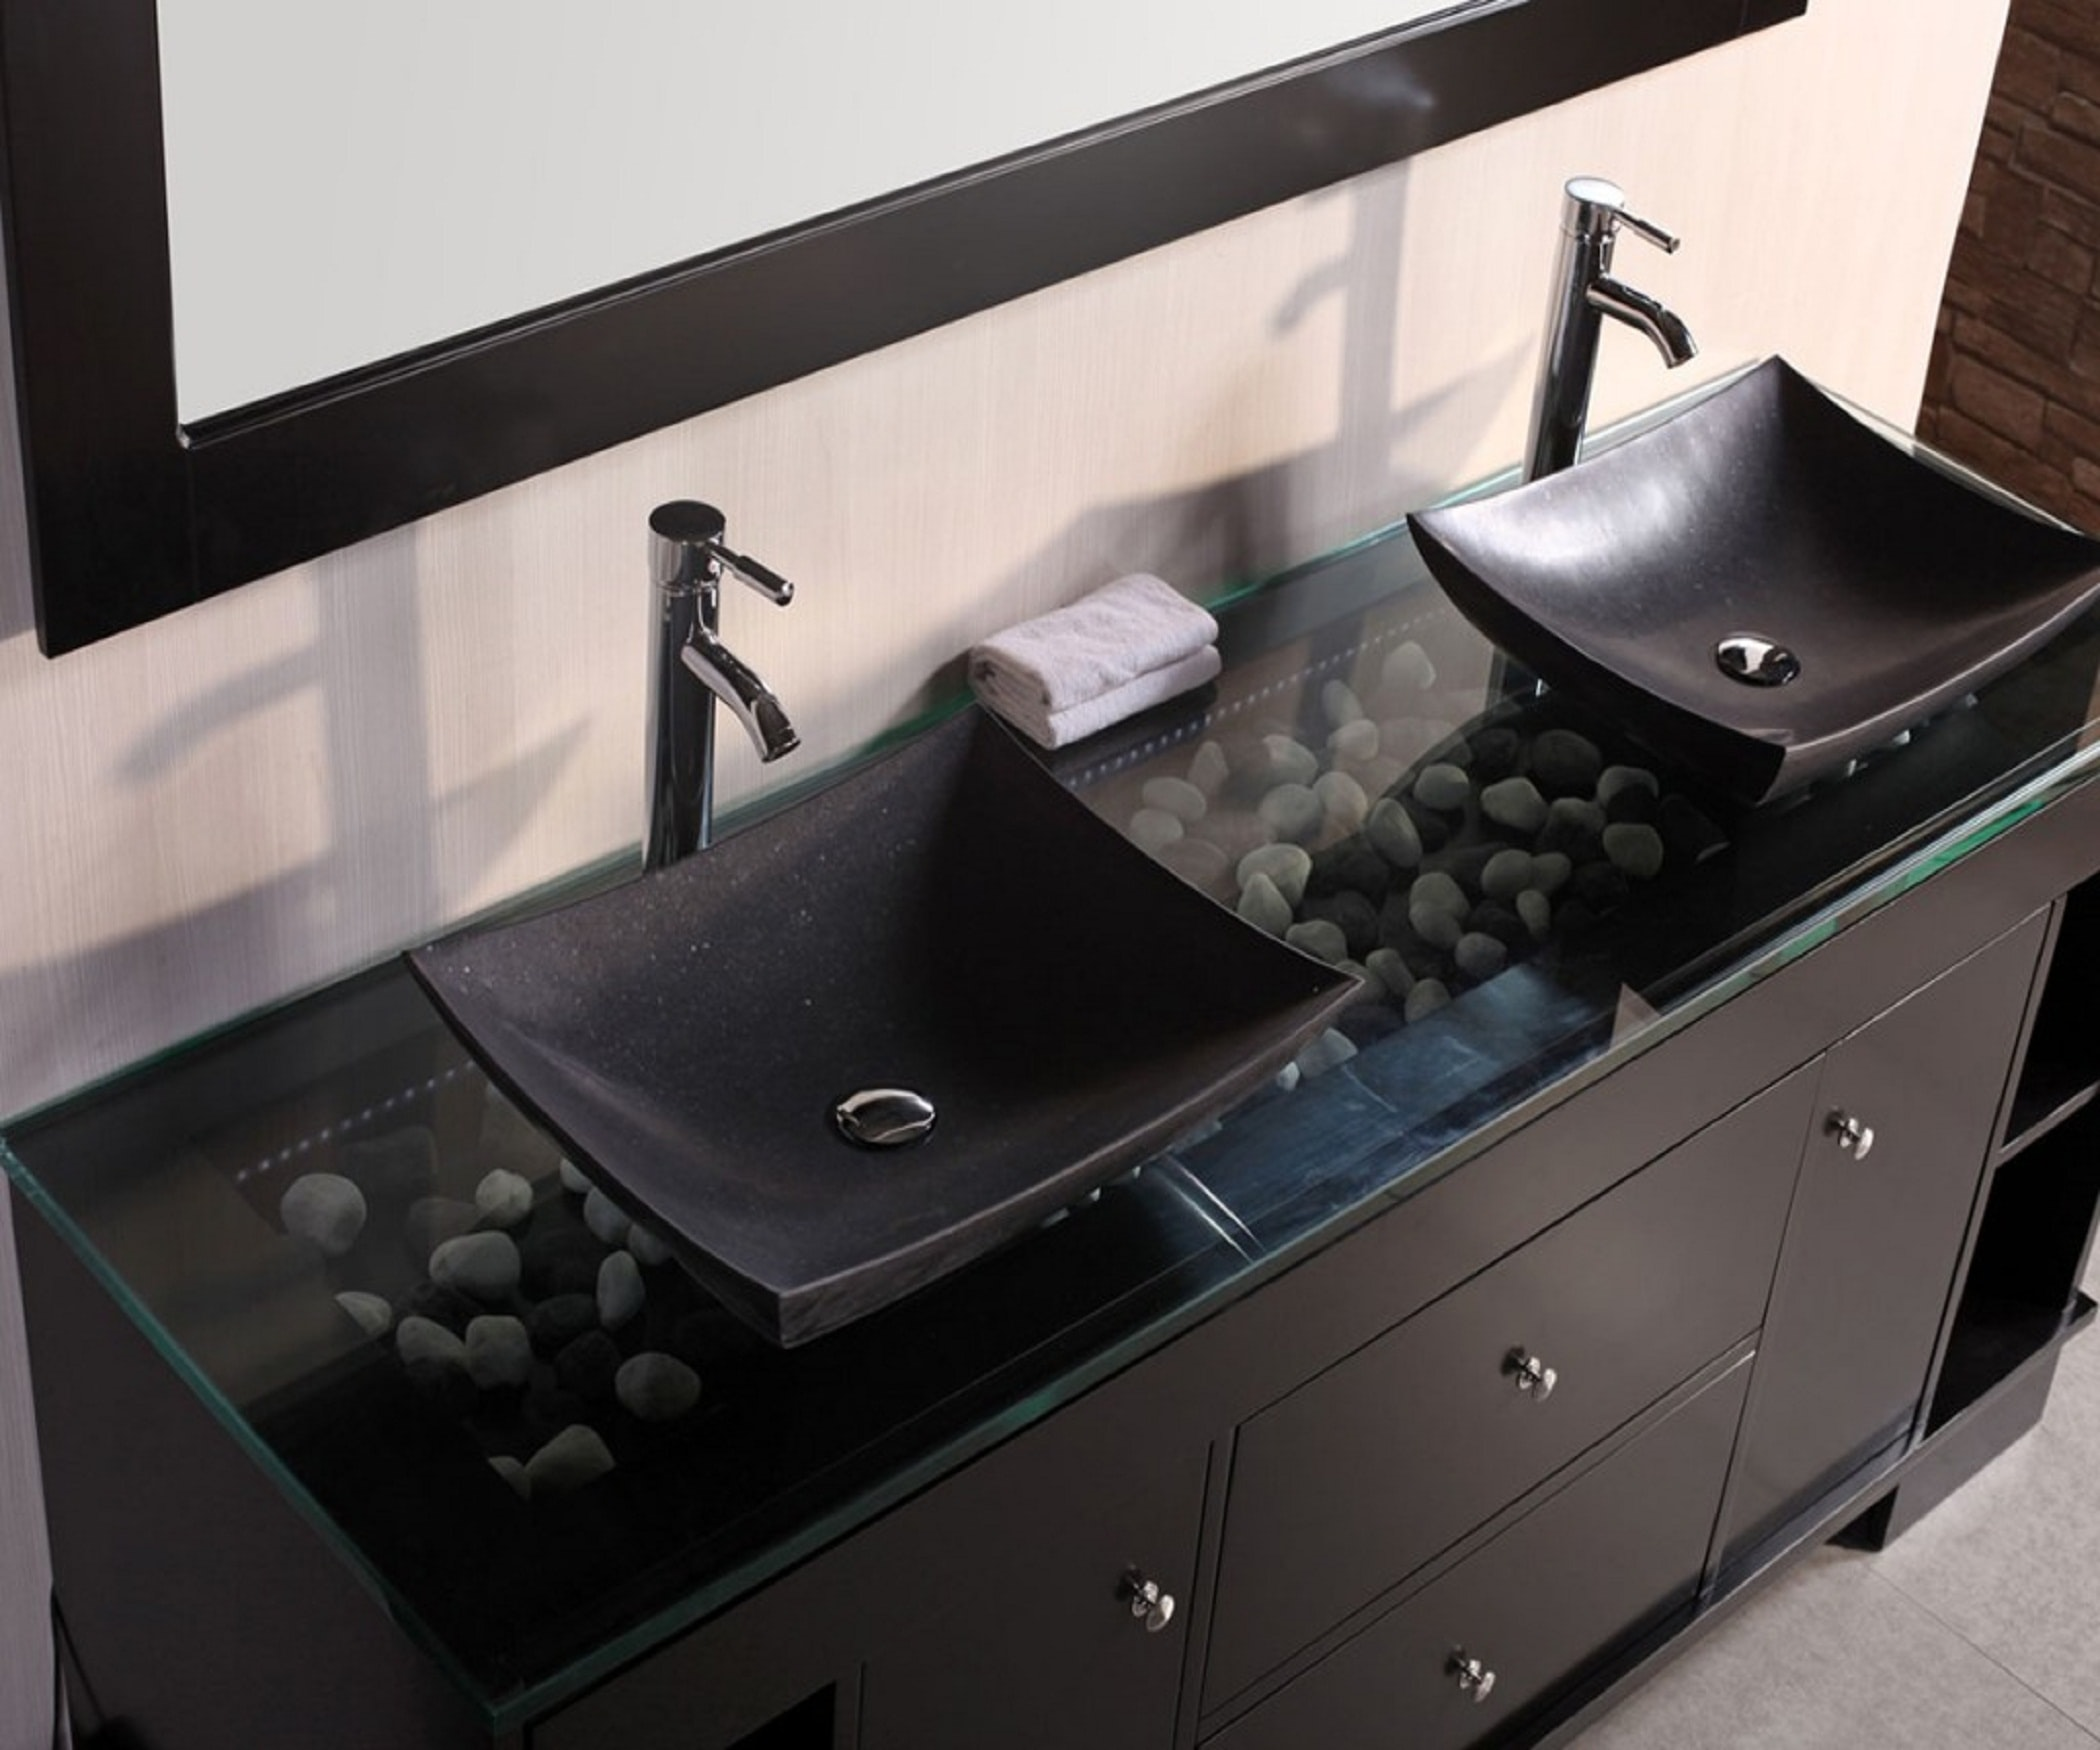 A His and Hers bathroom vanity.